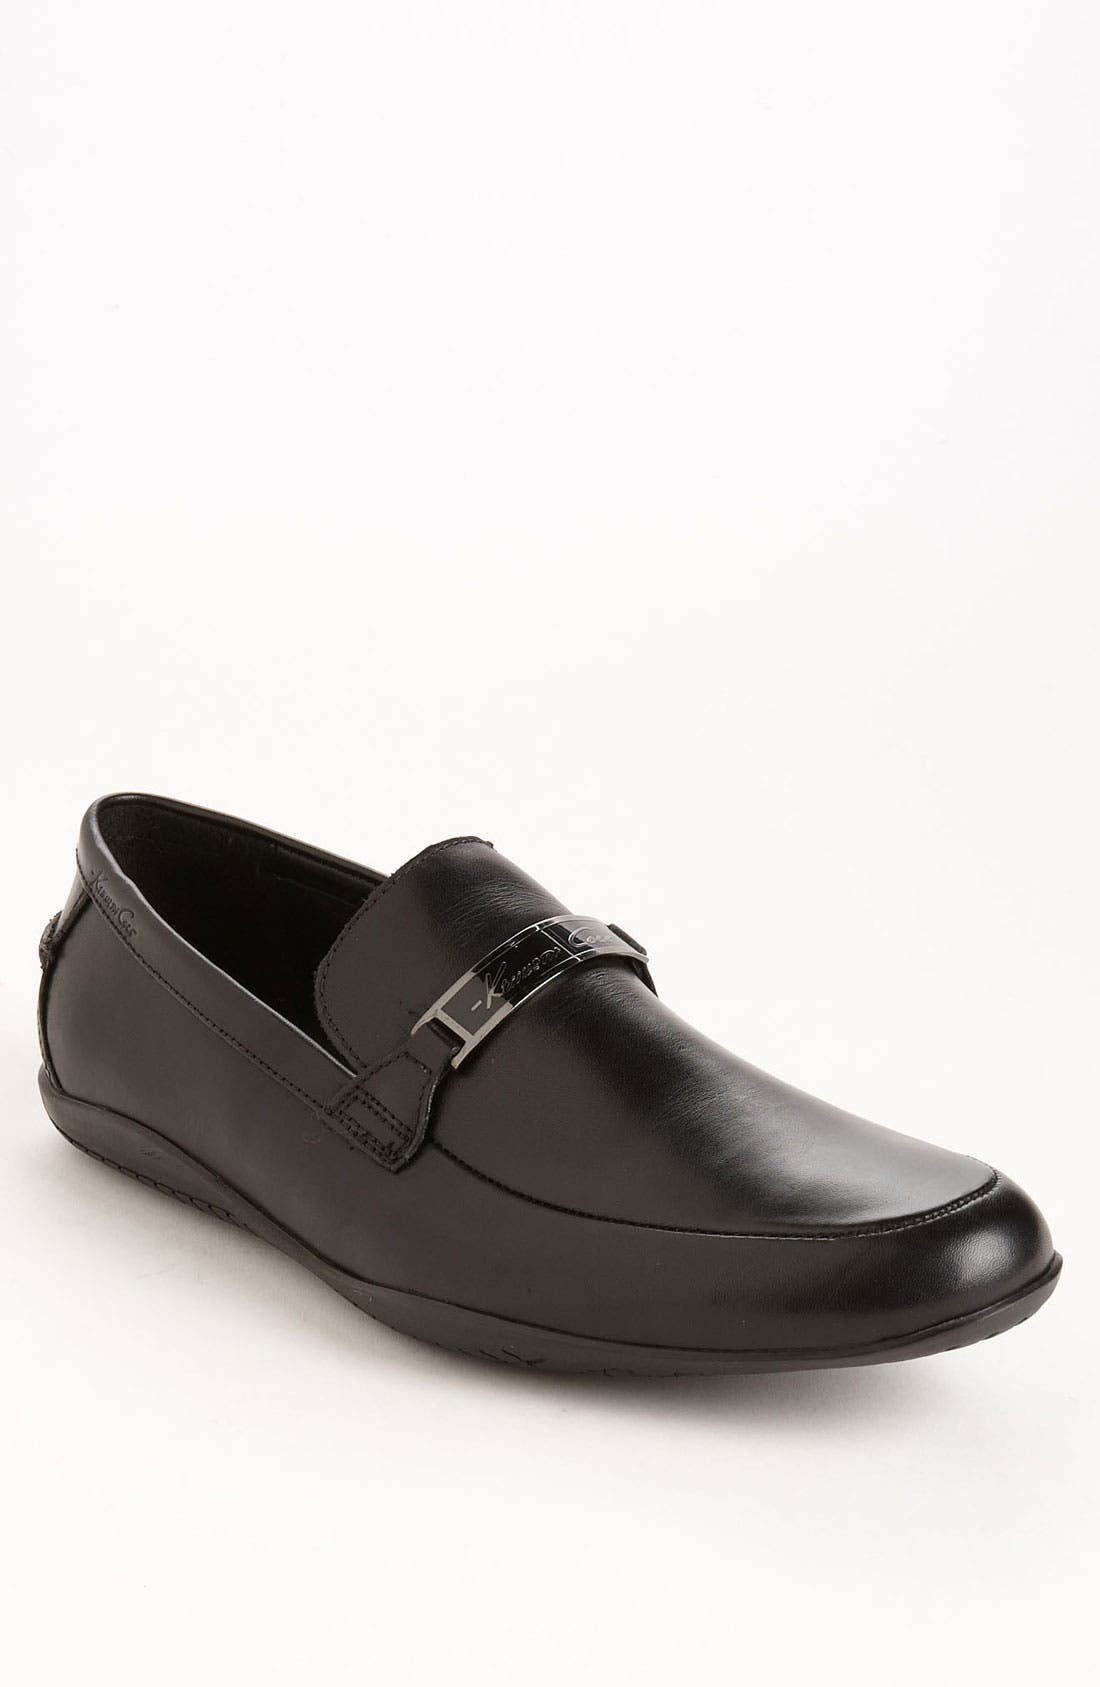 Alternate Image 1 Selected - Kenneth Cole New York 'Home Grown' Loafer